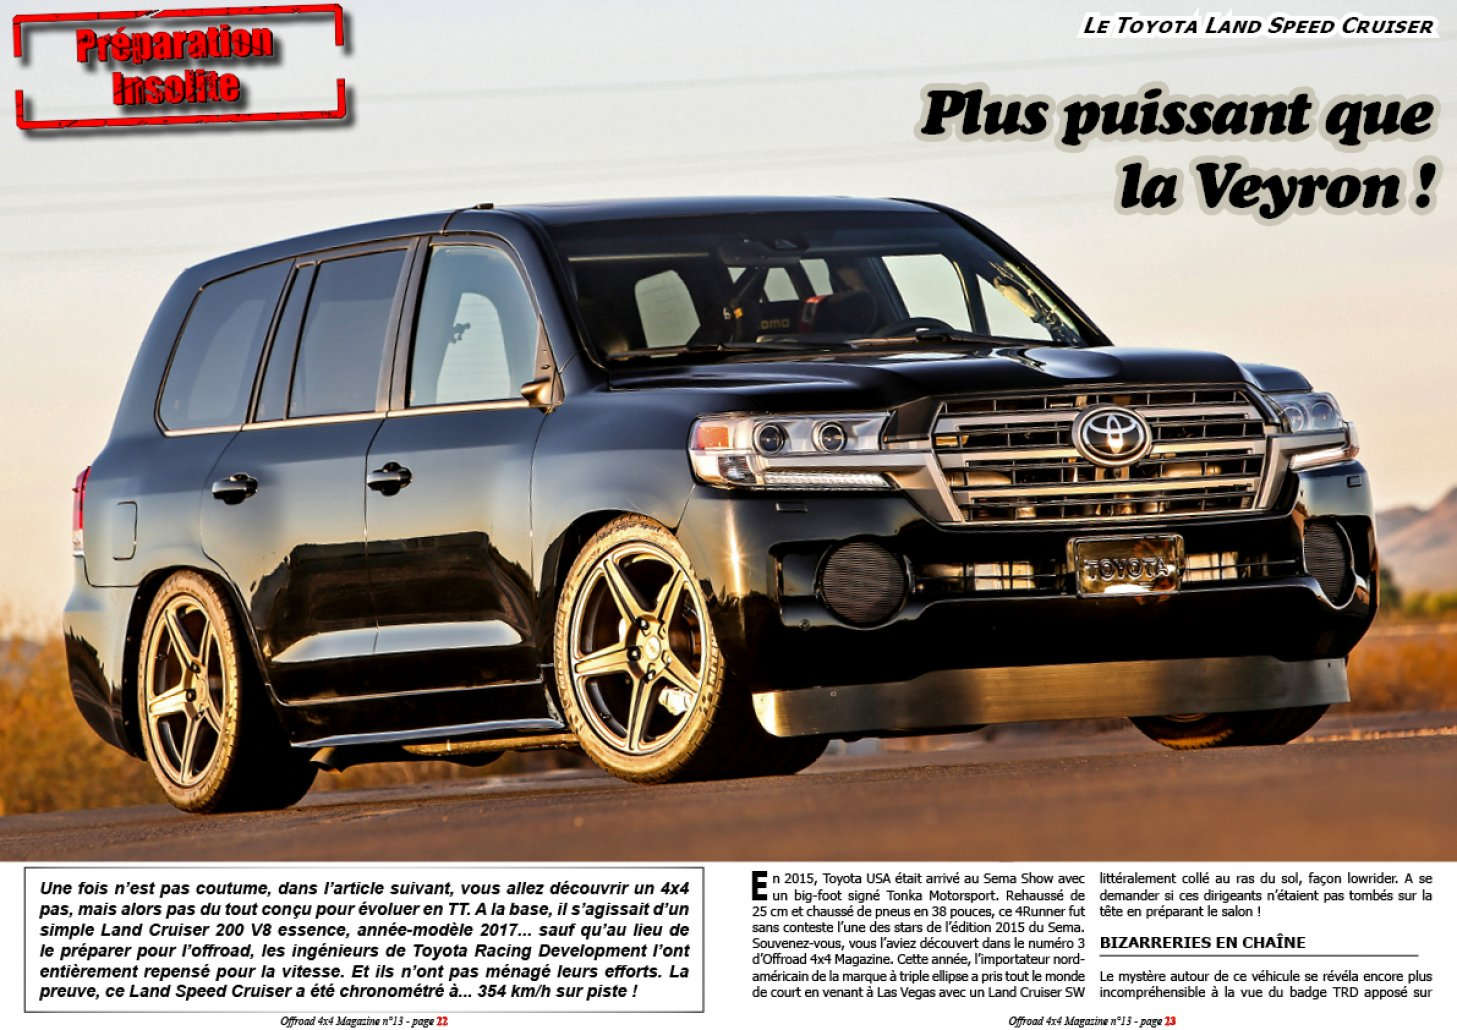 Le Toyota Land Speed Cruiser